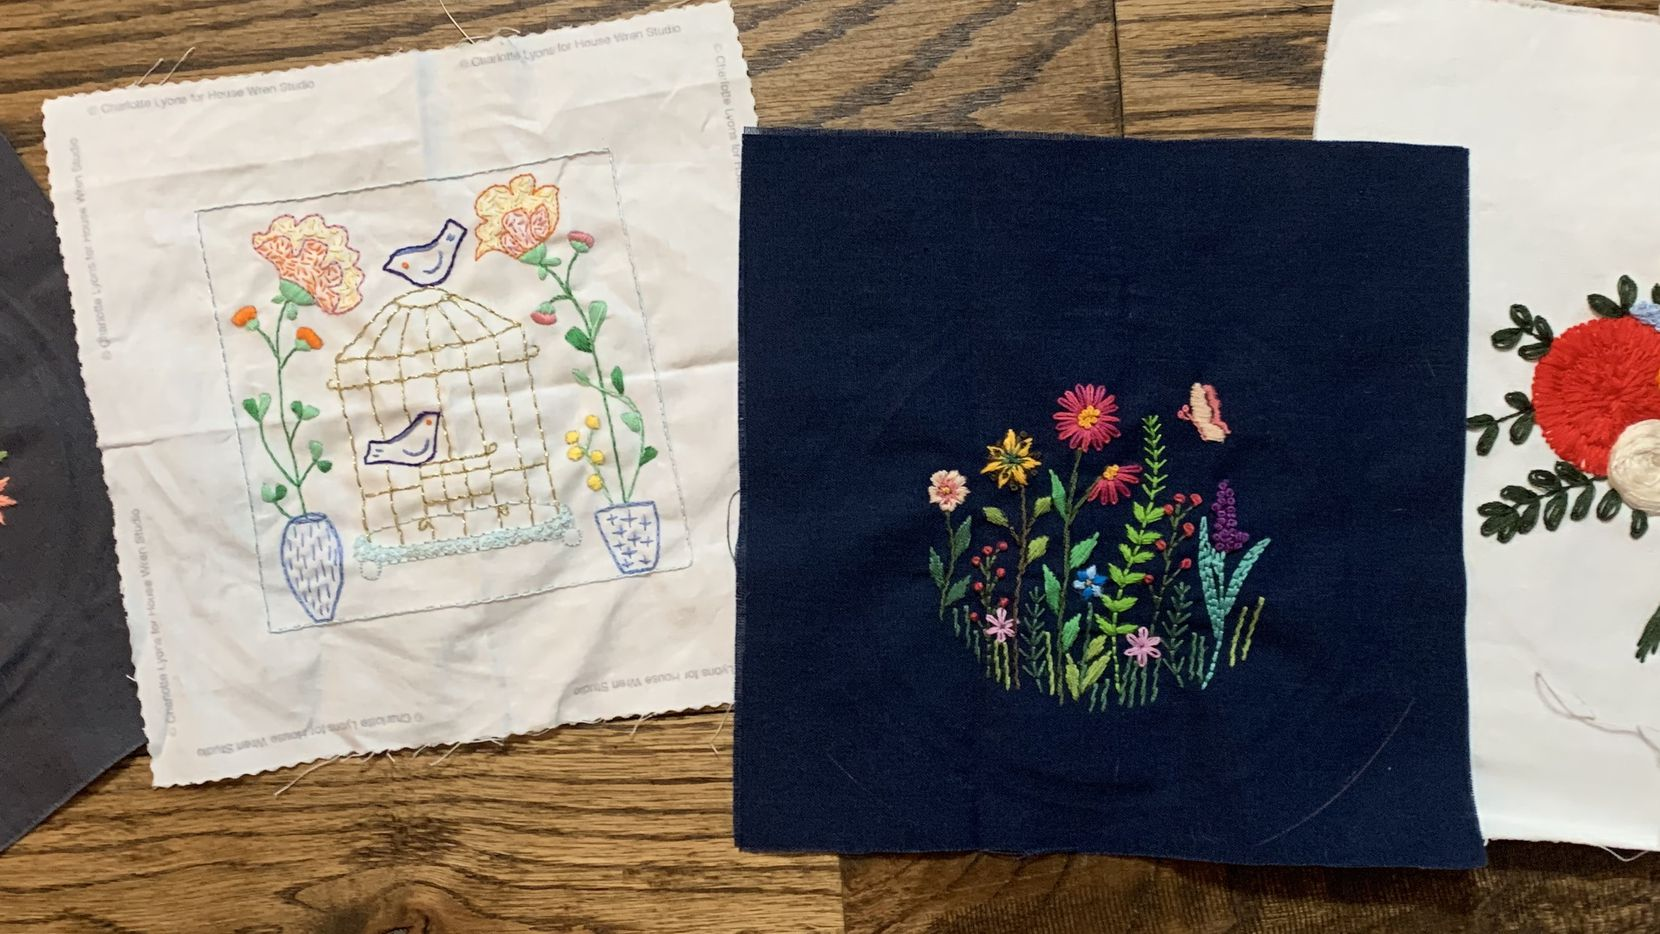 Some of Tyra's embroidery pieces